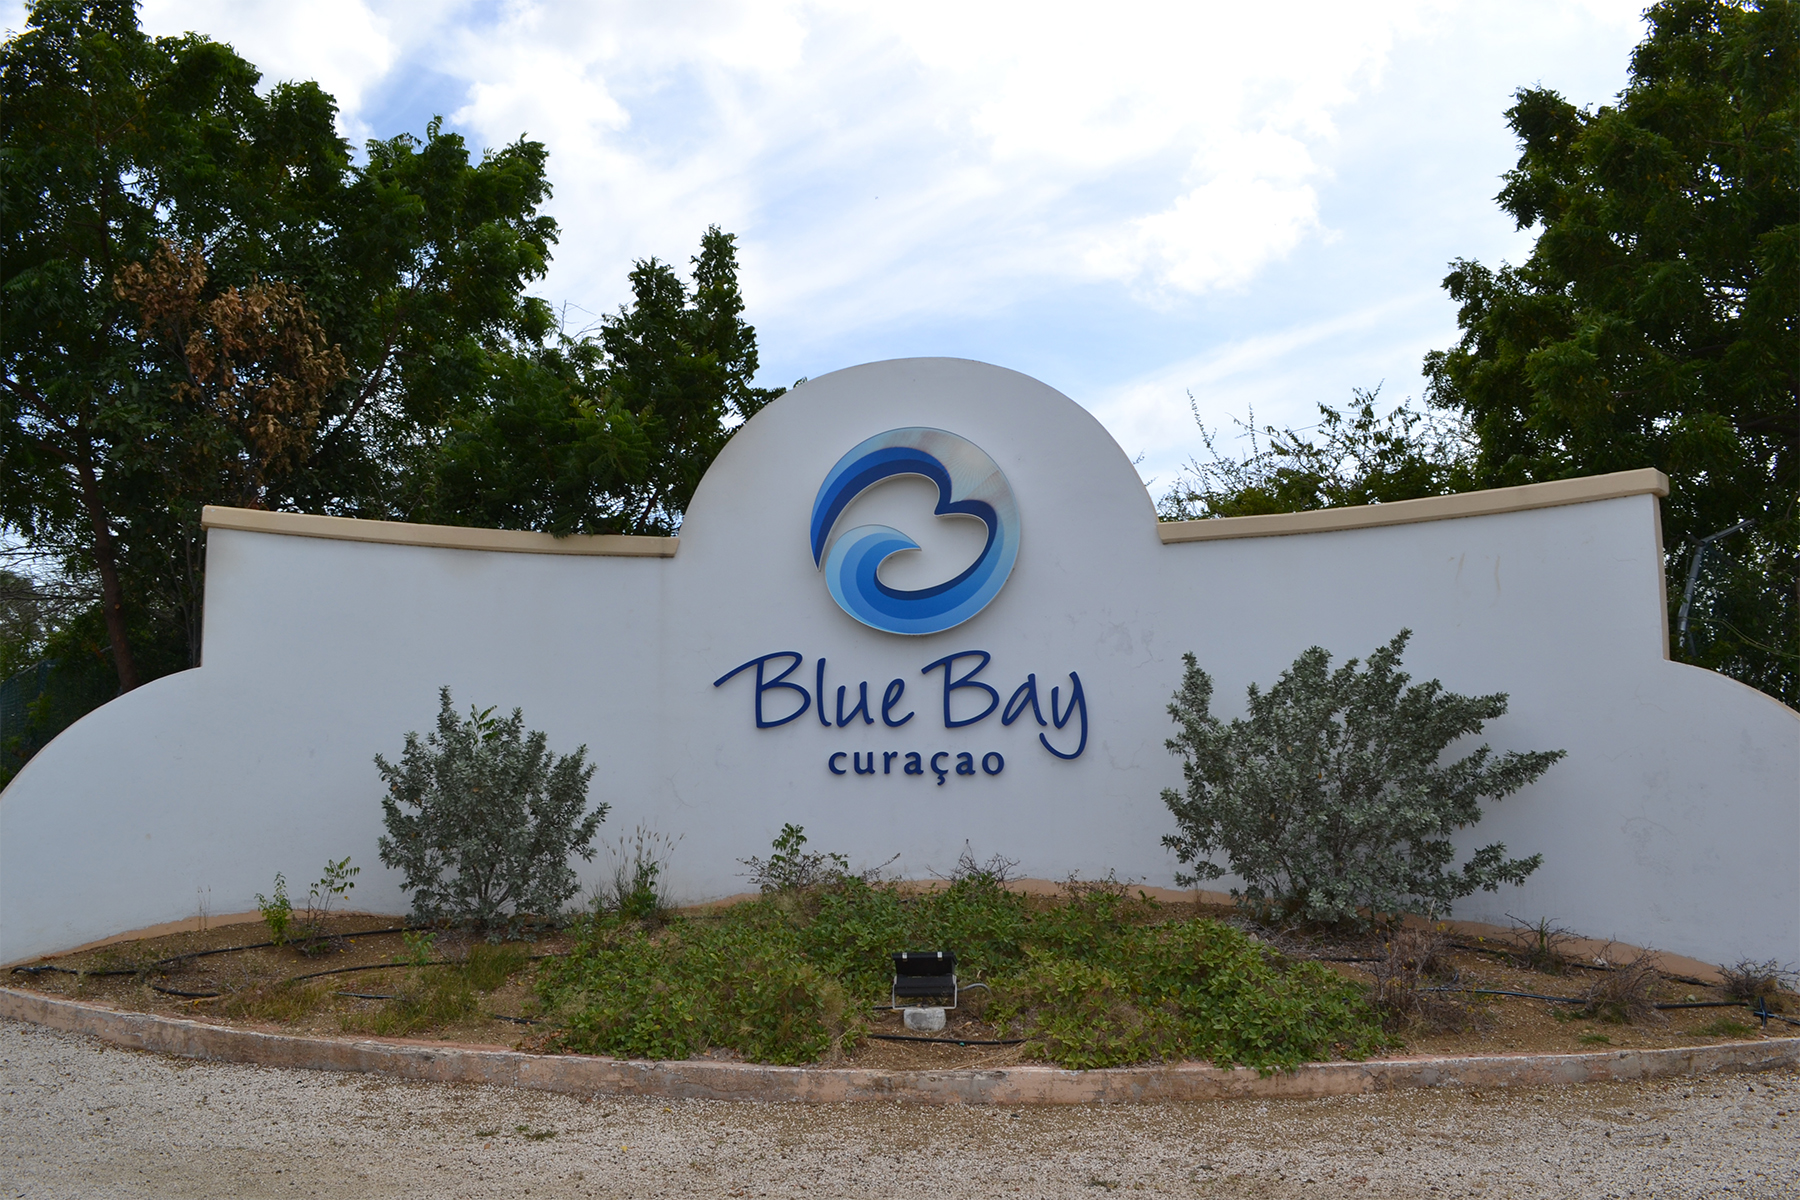 Additional photo for property listing at Blue Bay Ocean Front Lot Other Cities In Curacao, Cities In Curacao Curacao